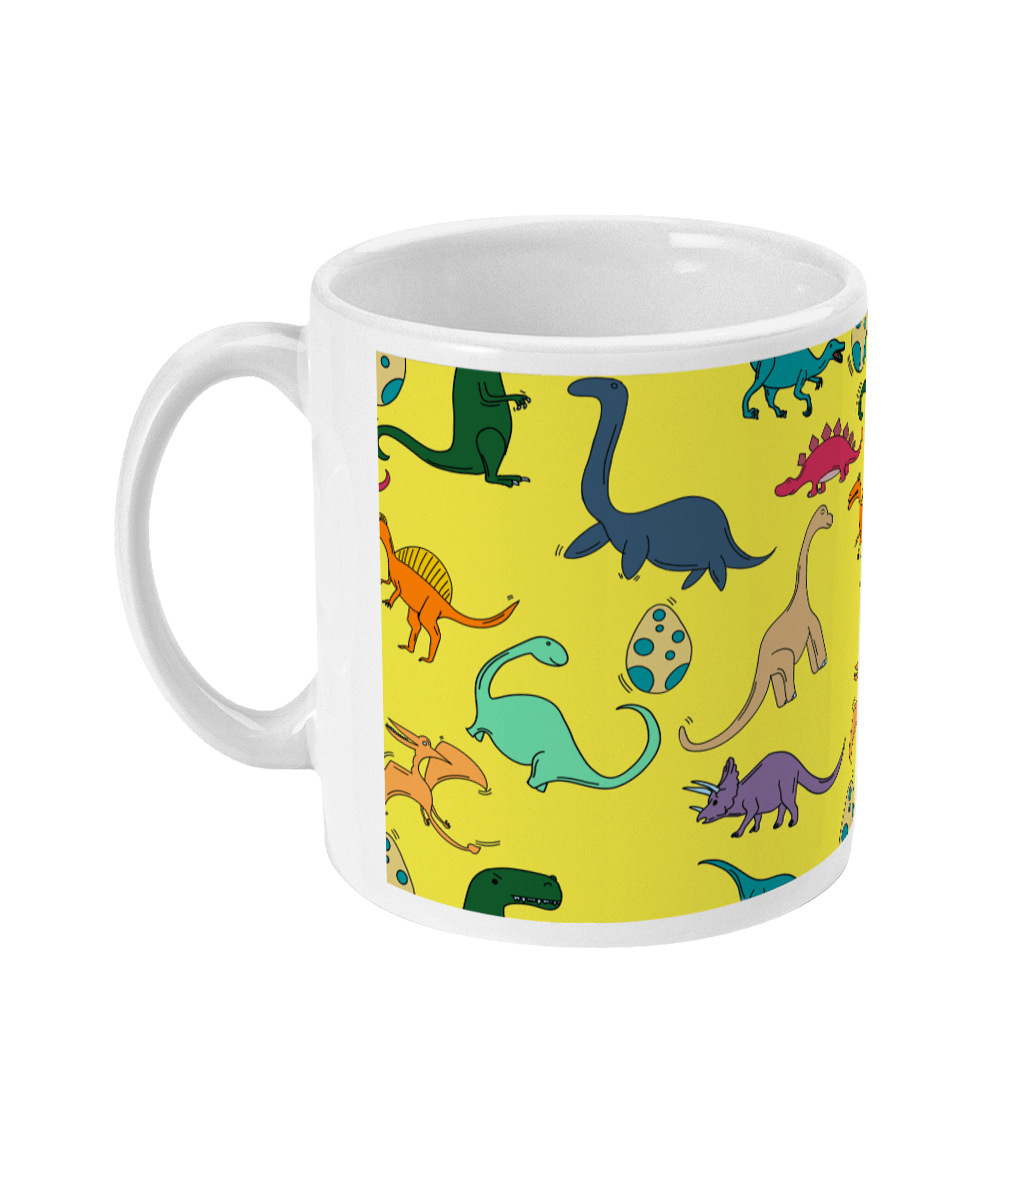 Colourful Dinosaurs Yellow Mug - Mermaid&Wild